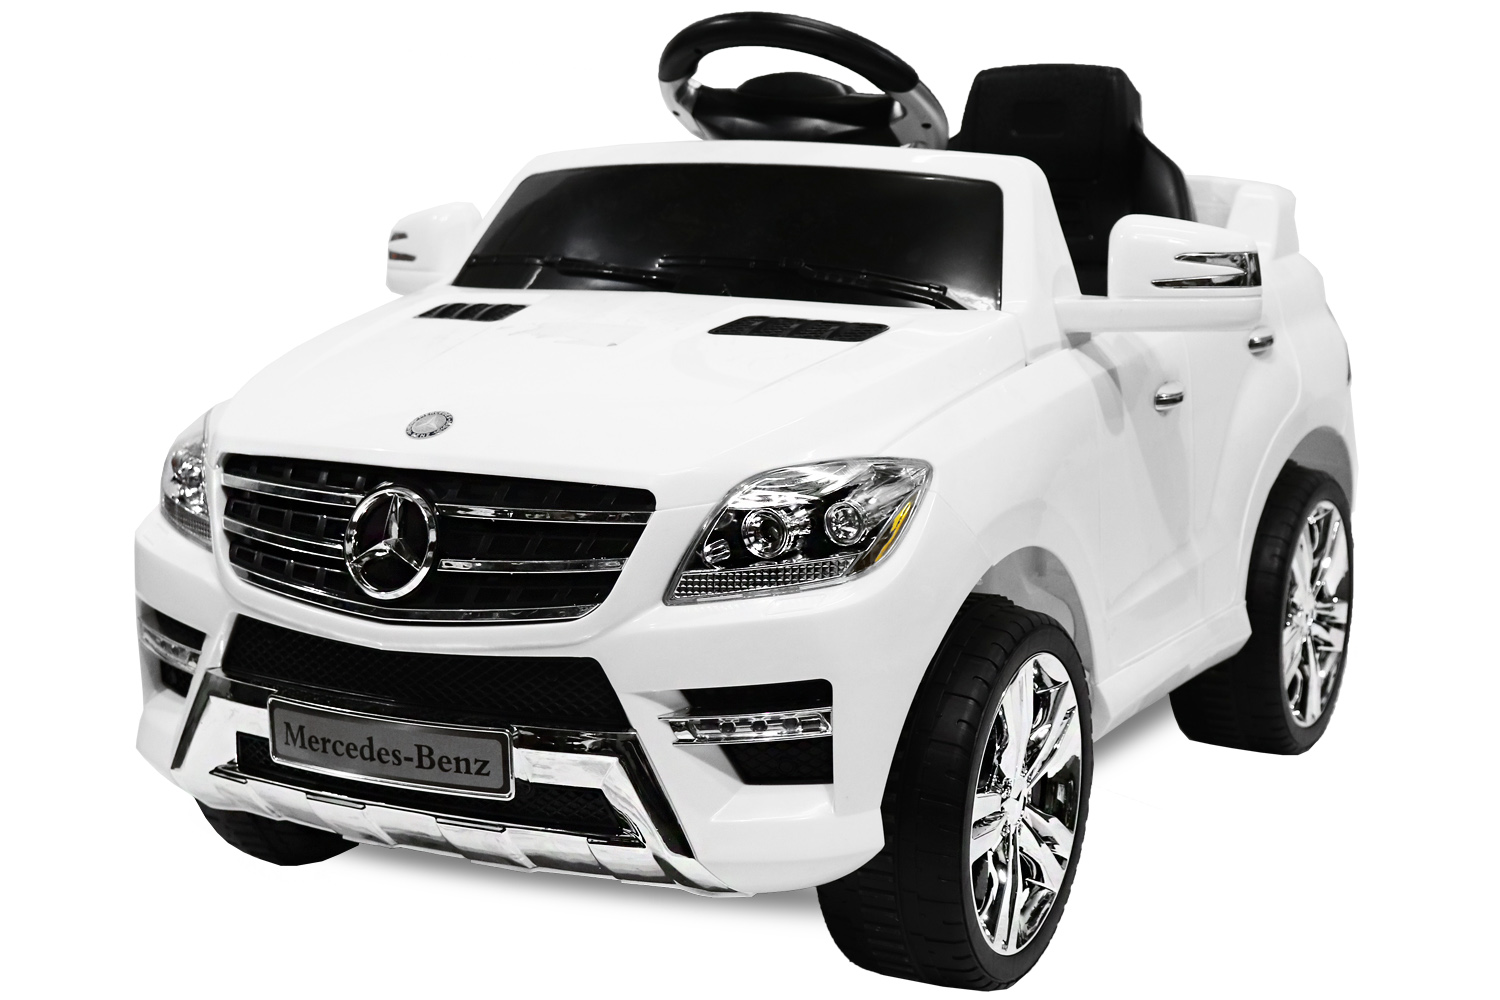 lizenz elektro kinderauto mercedes ml350 2x25w motor suv. Black Bedroom Furniture Sets. Home Design Ideas